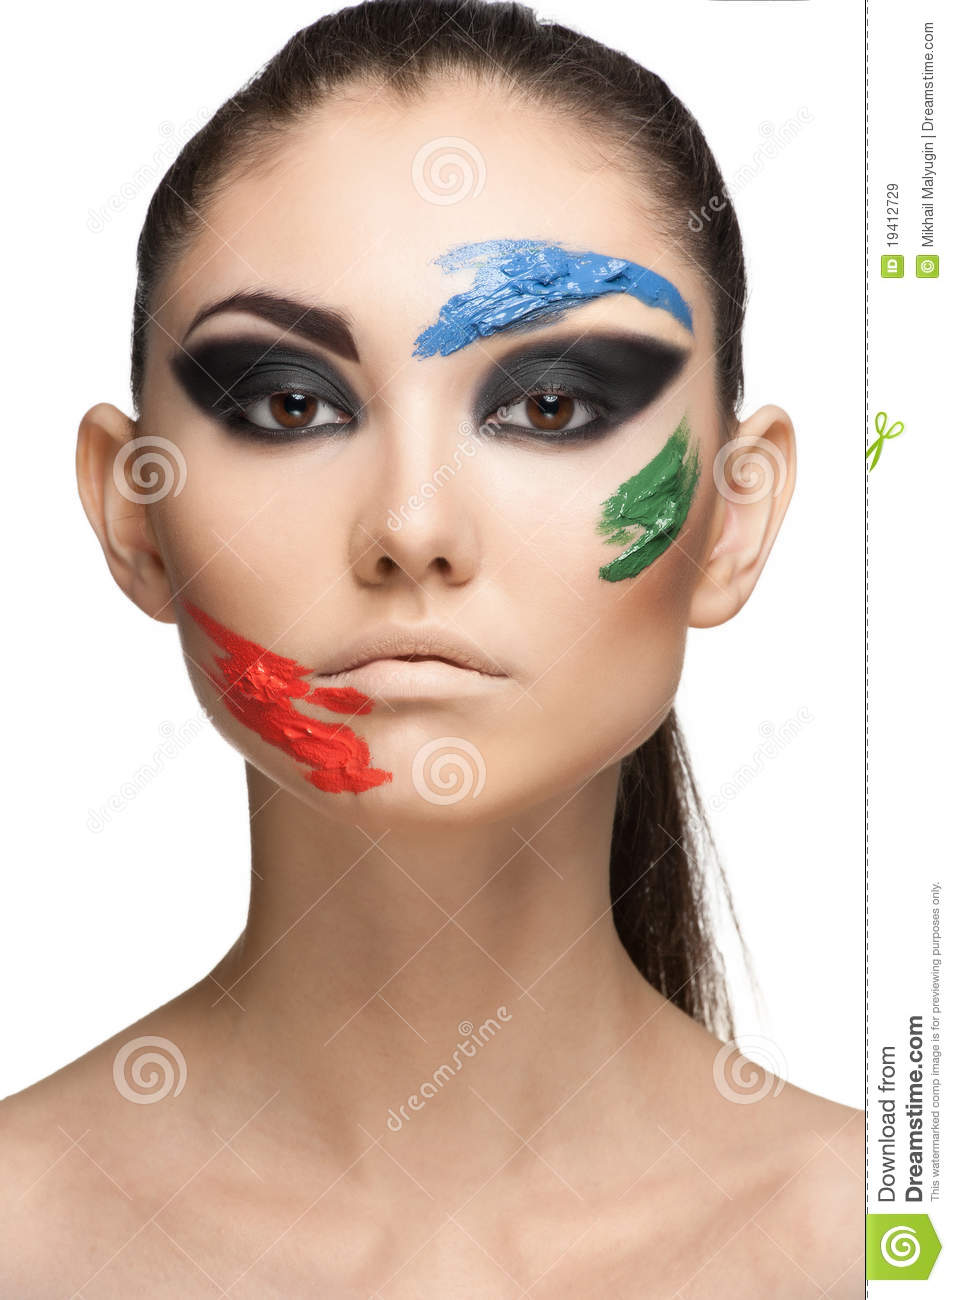 Fashion Make-up With Face Art Royalty Free Stock Images ...